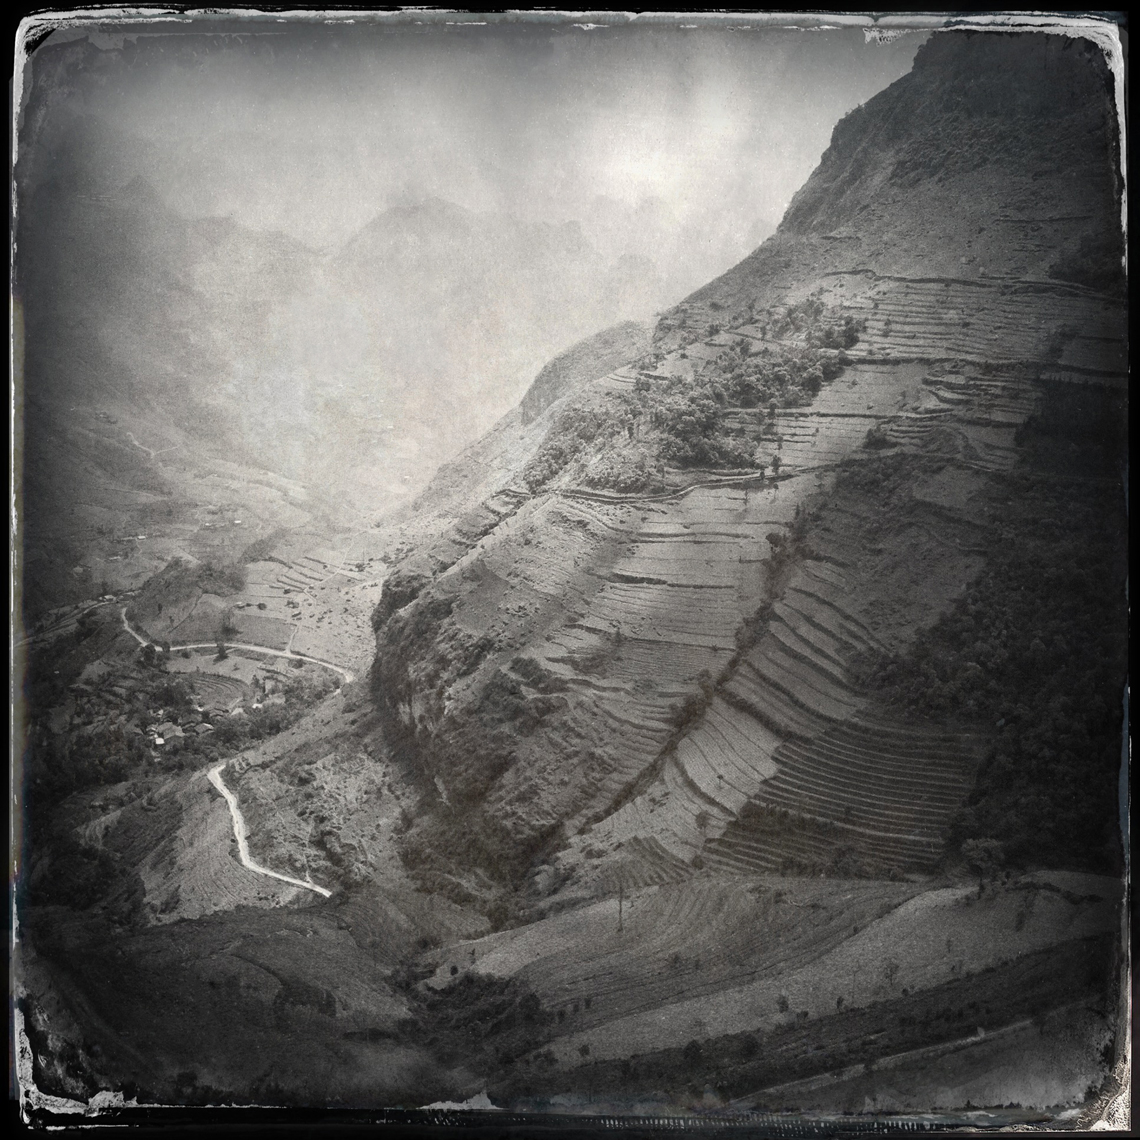 Jon Wyatt Photography - Mountains near Dong Van on the Chinese border, Ha Giang Province, North East Vietnam